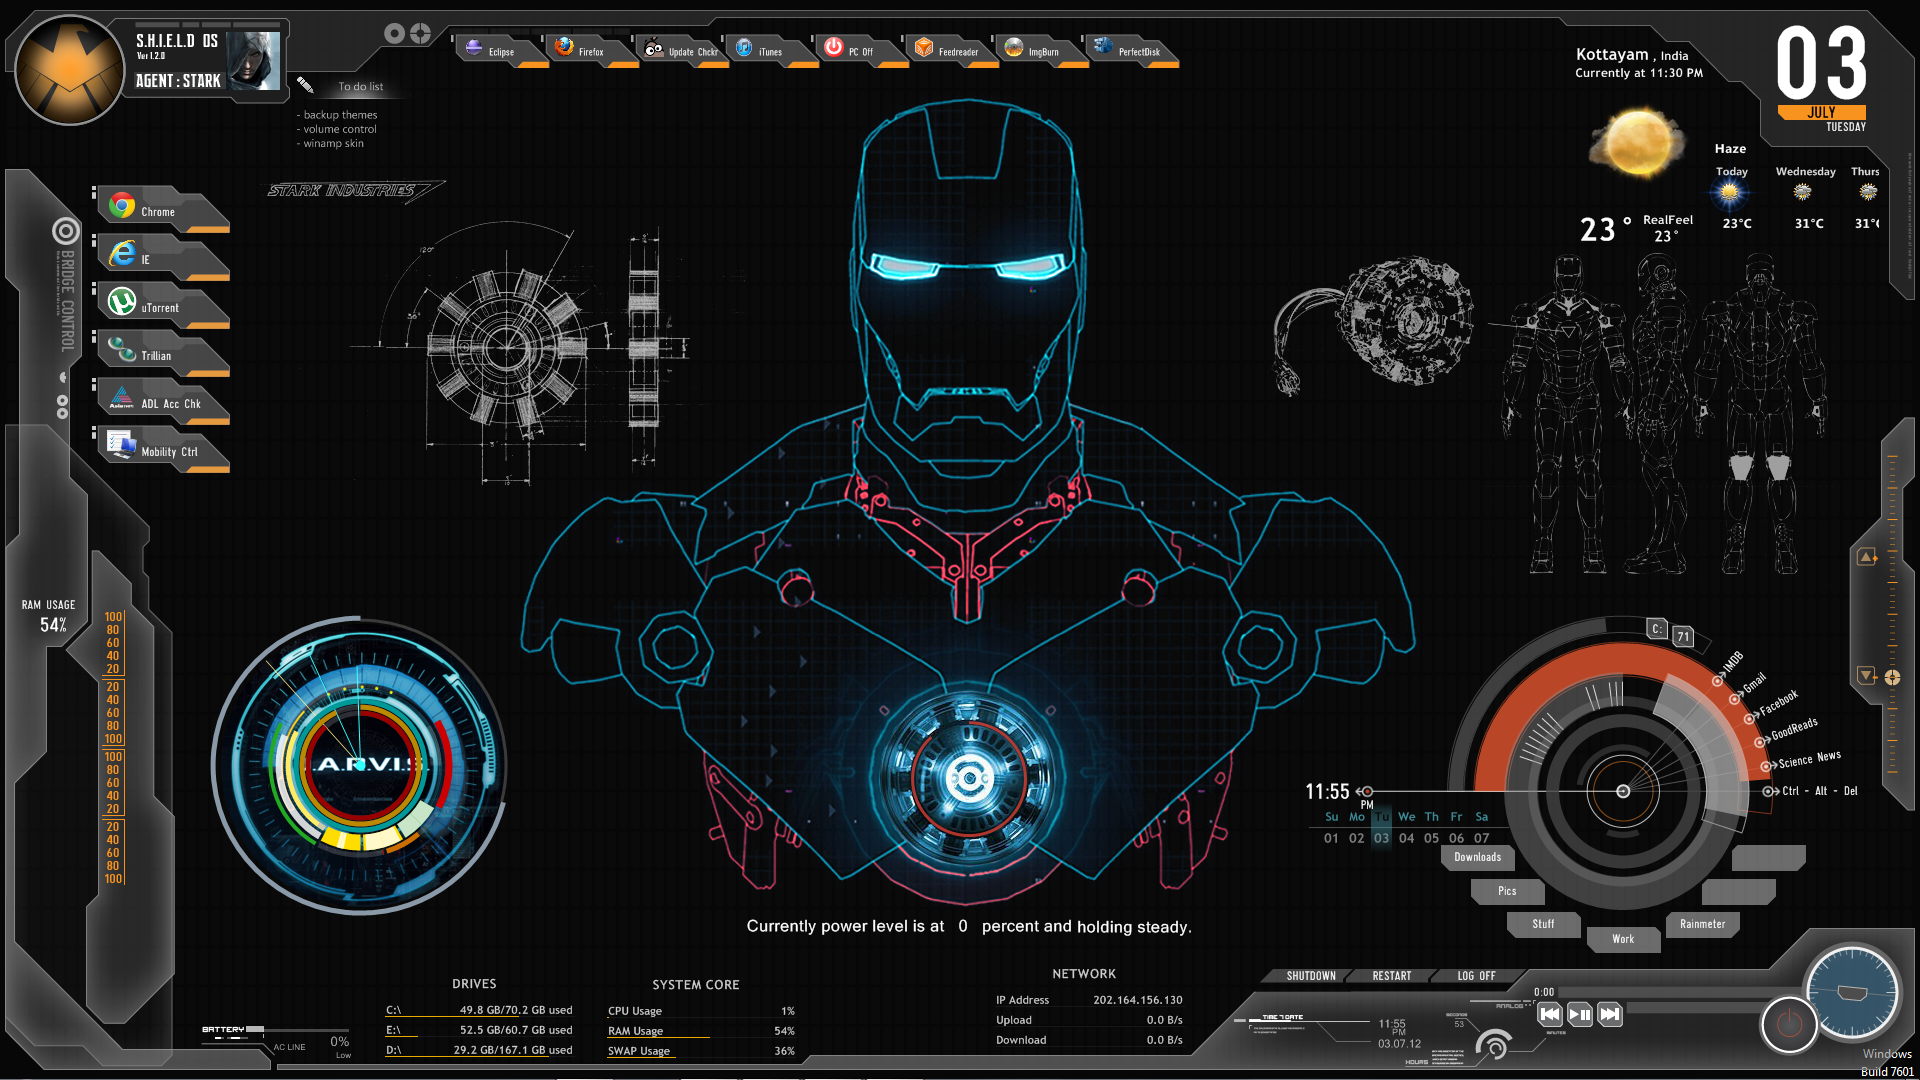 iron man ui - Google 検索